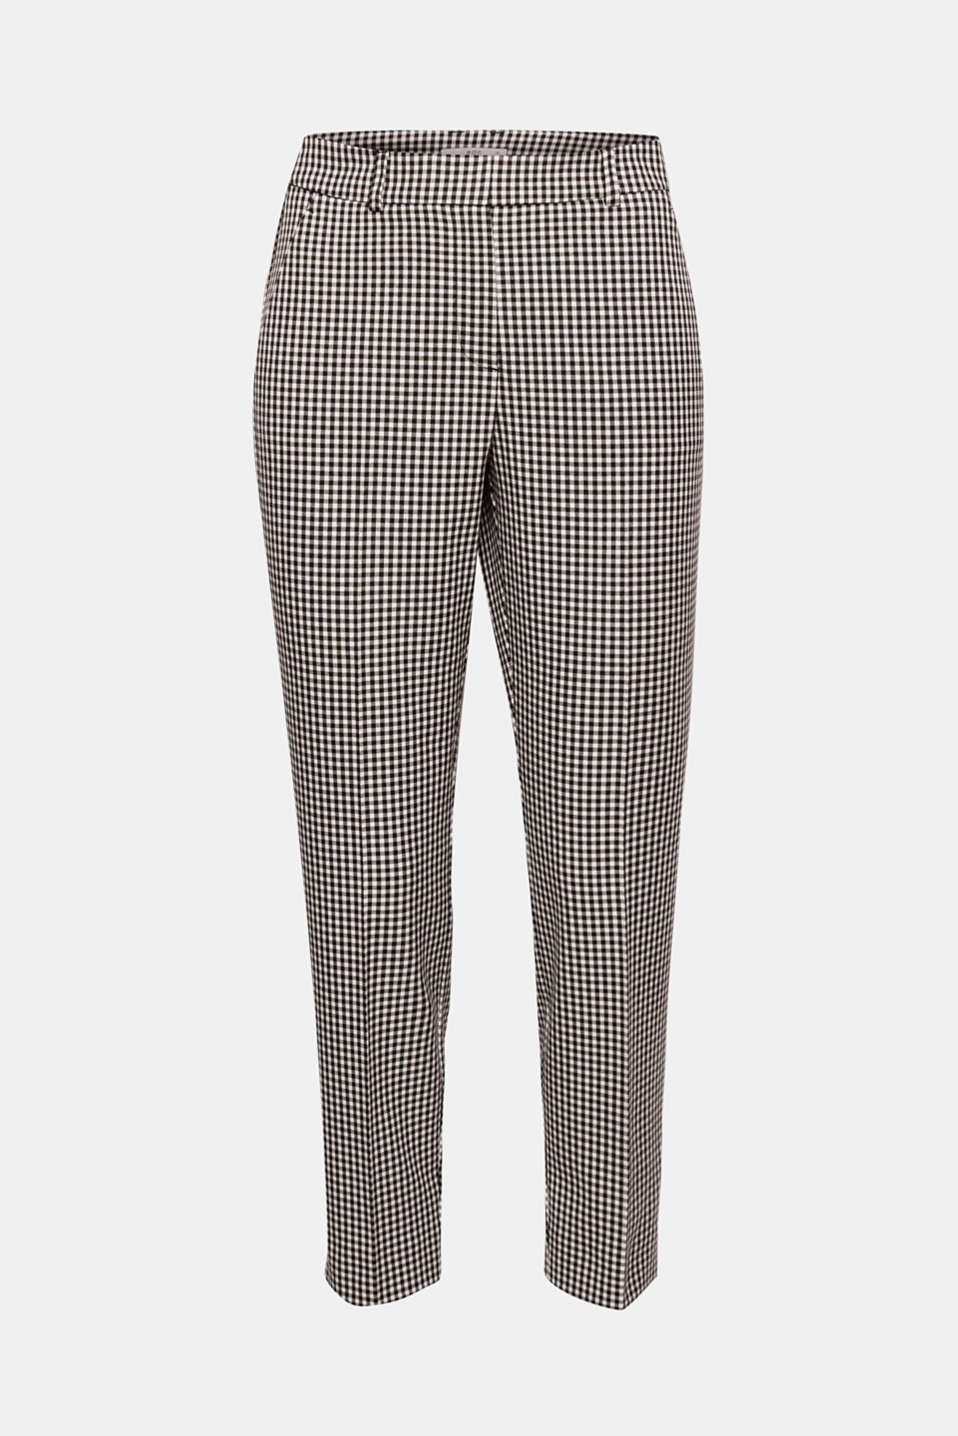 Brand new look in a trendy check pattern! These stretch trousers in a stylish gingham pattern are head-turners.